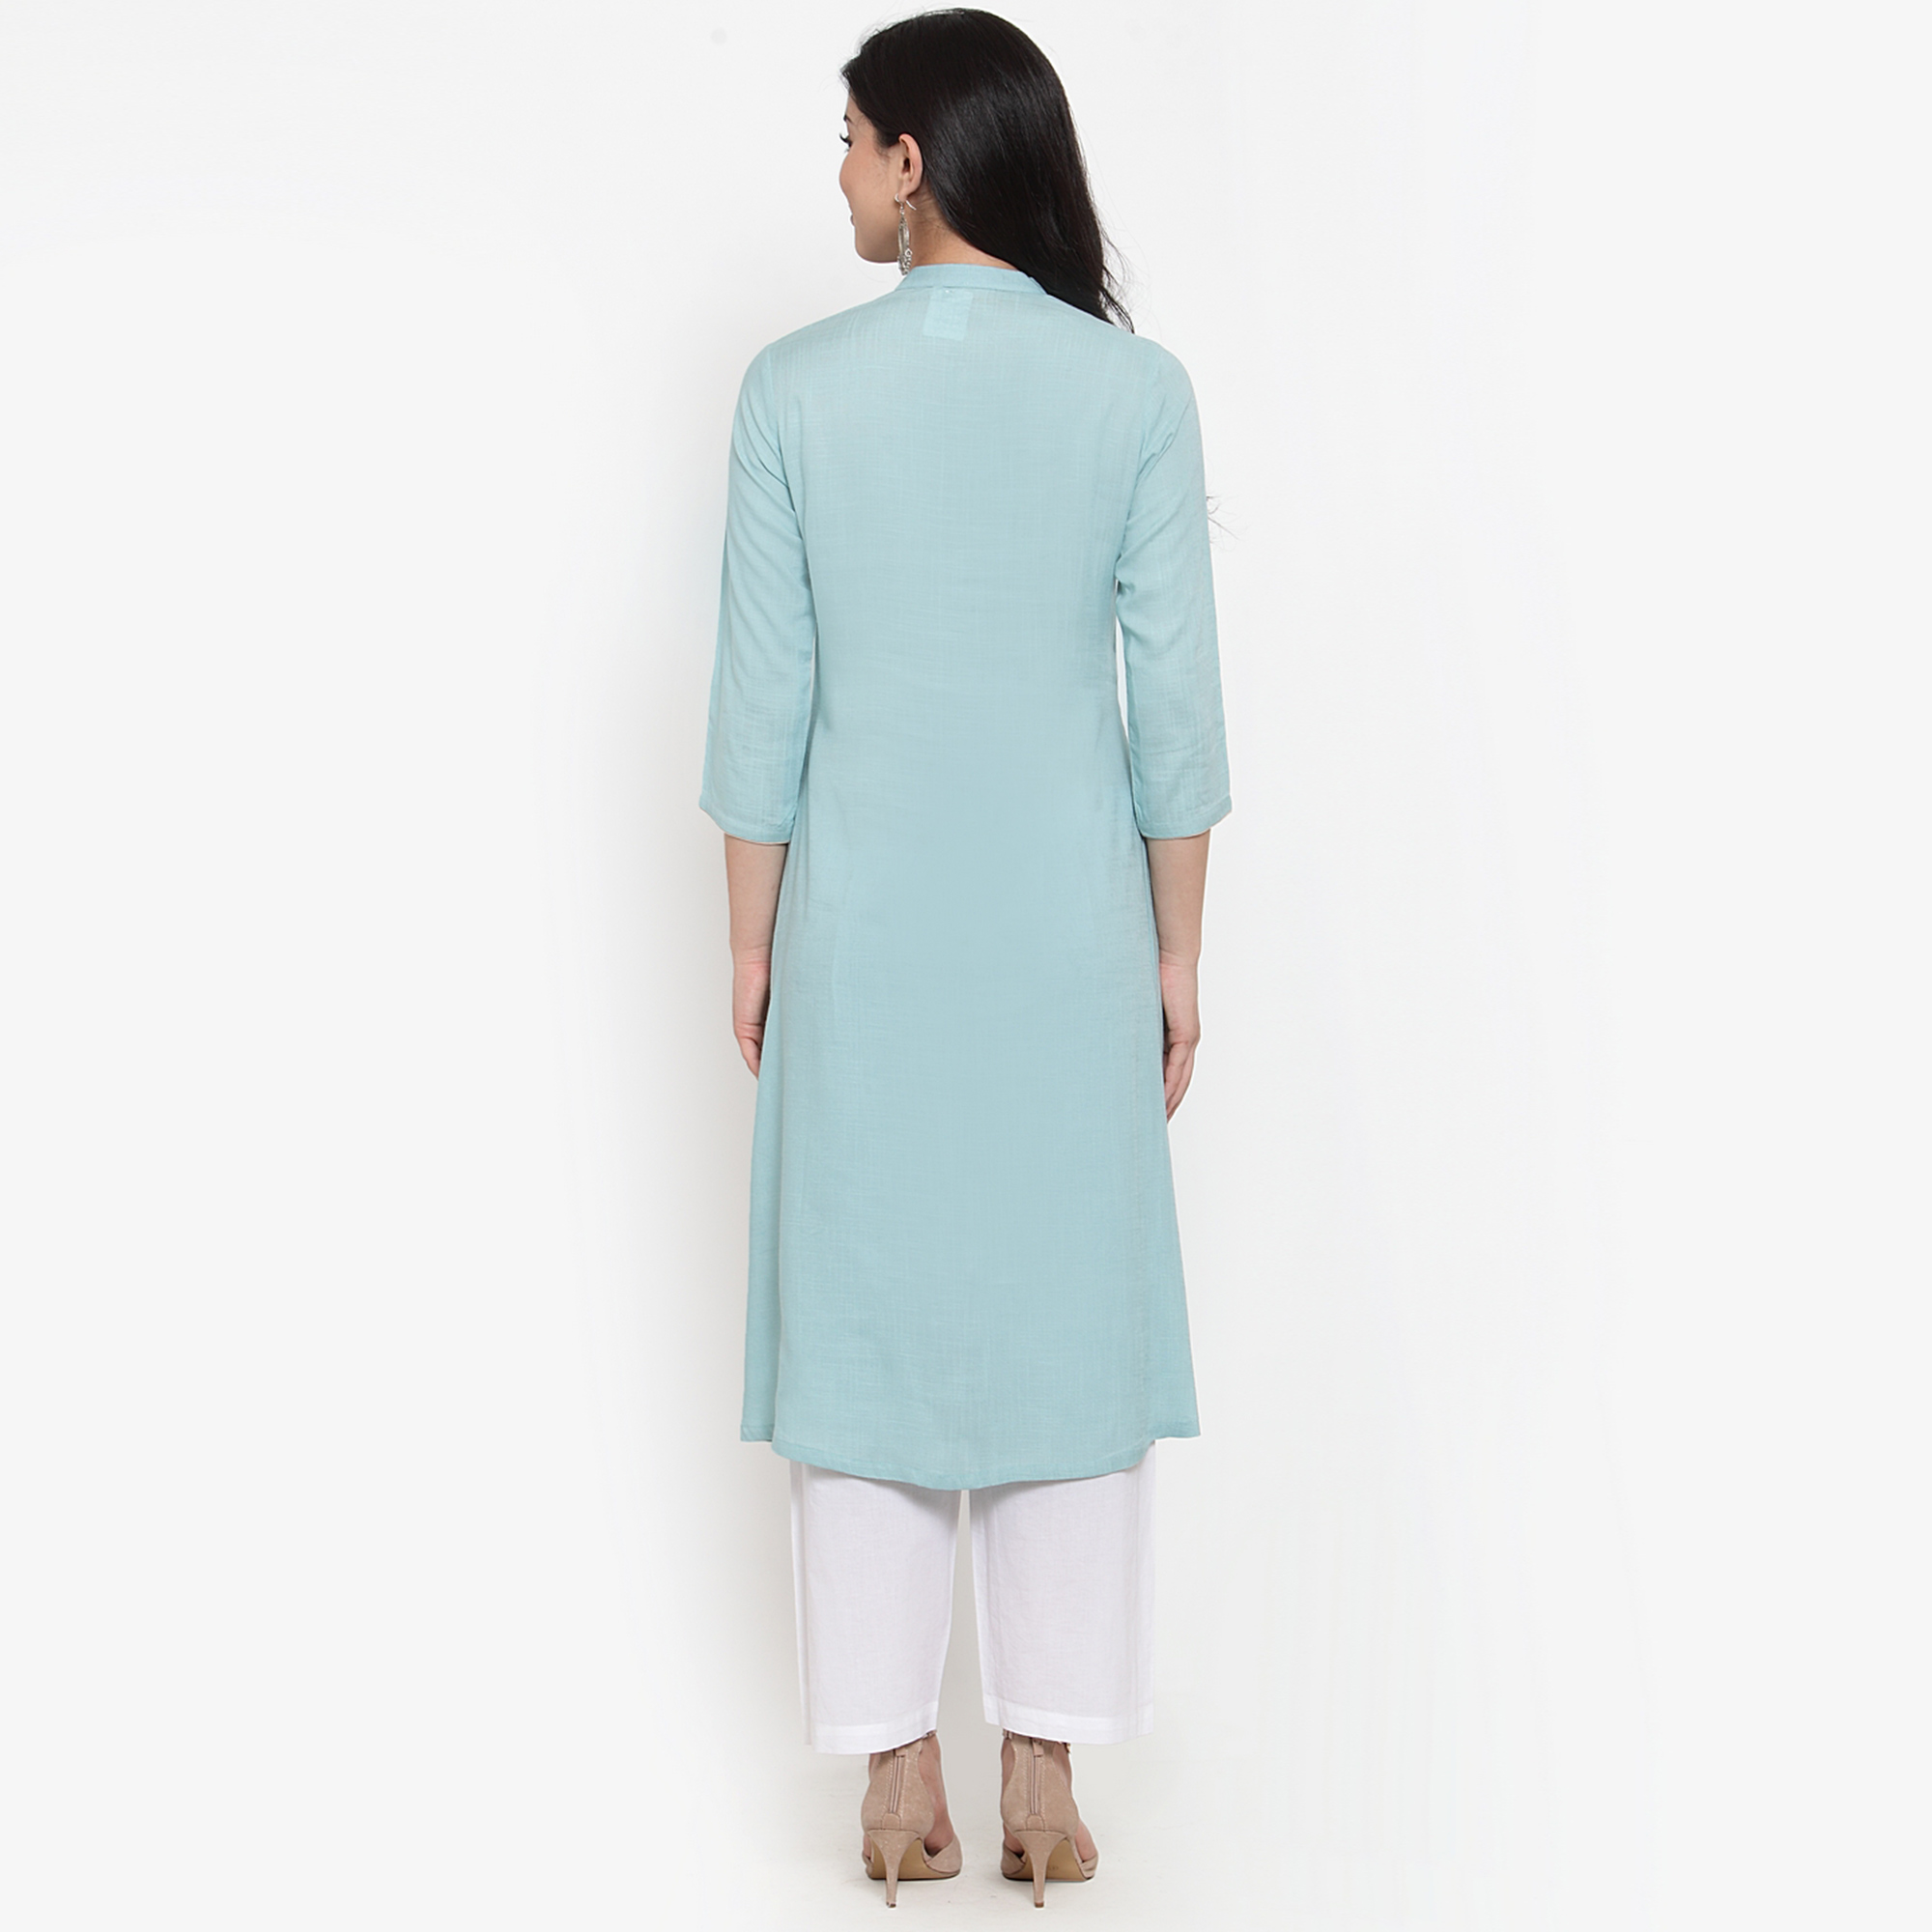 Captivating Blue Colored Party Wear Embroidered Calf Length A-Line Viscose-Rayon Kurti